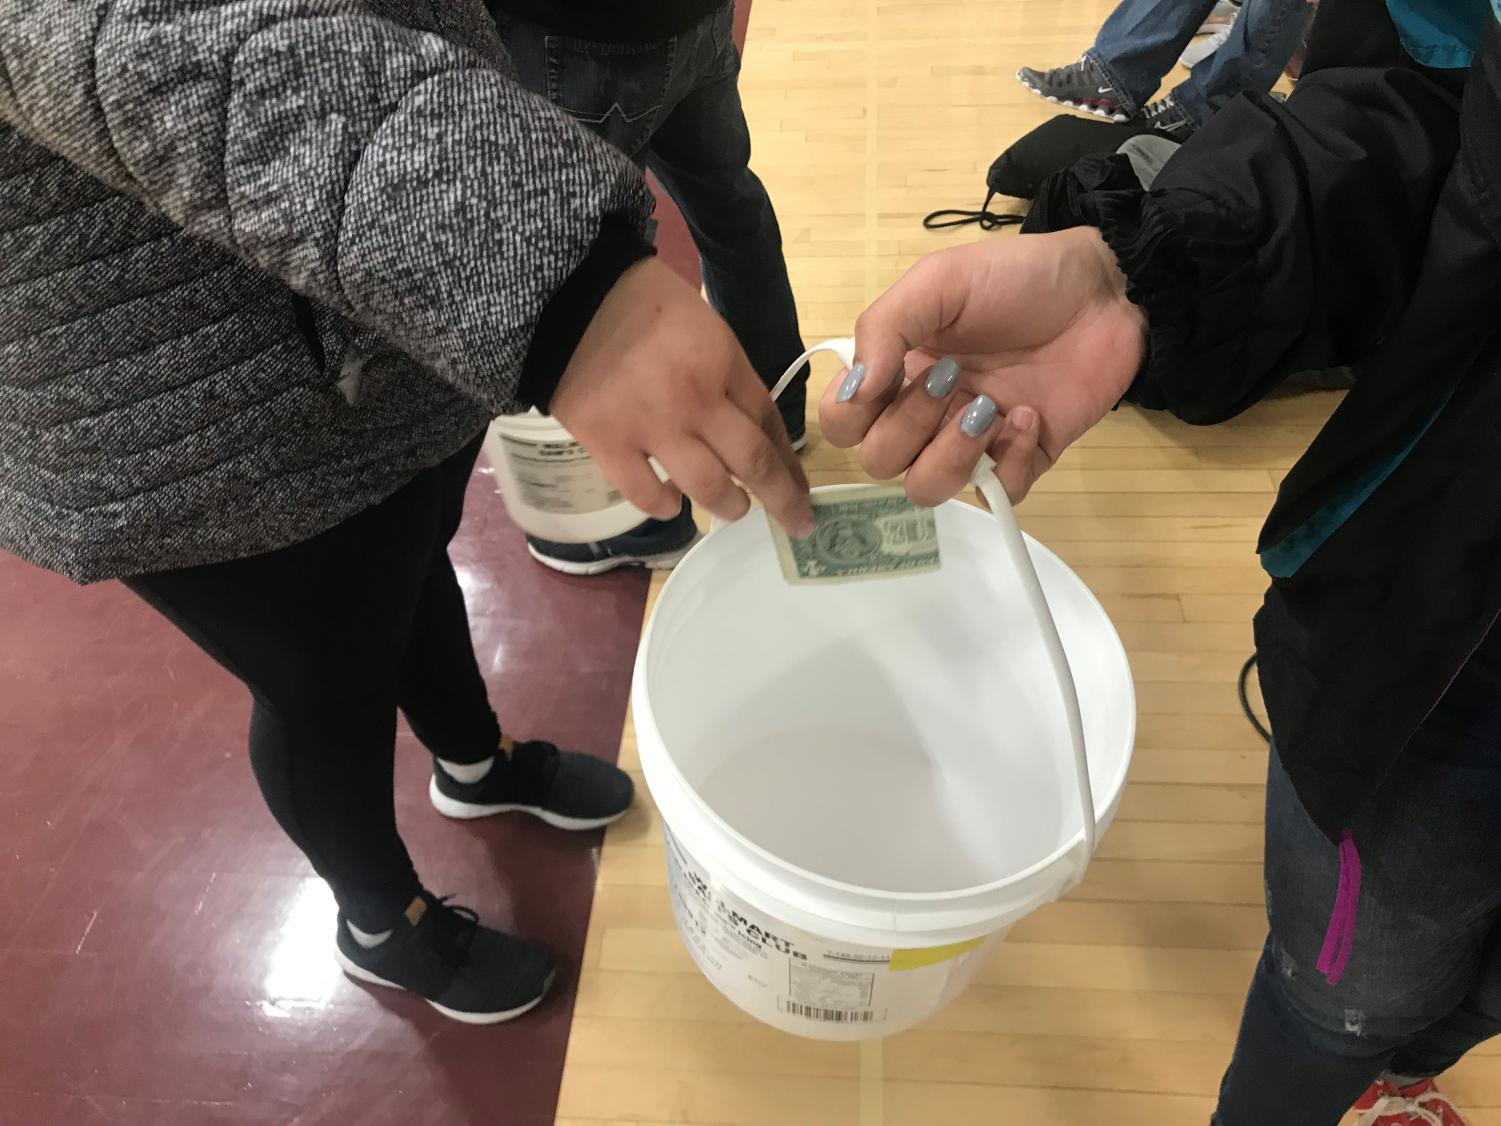 DECA seniors Isabelle Braun and Kallie Leiker made an effort to wrap up their Ronald McDonald House project with a final Miracle Minute, raising a total of $4.76.